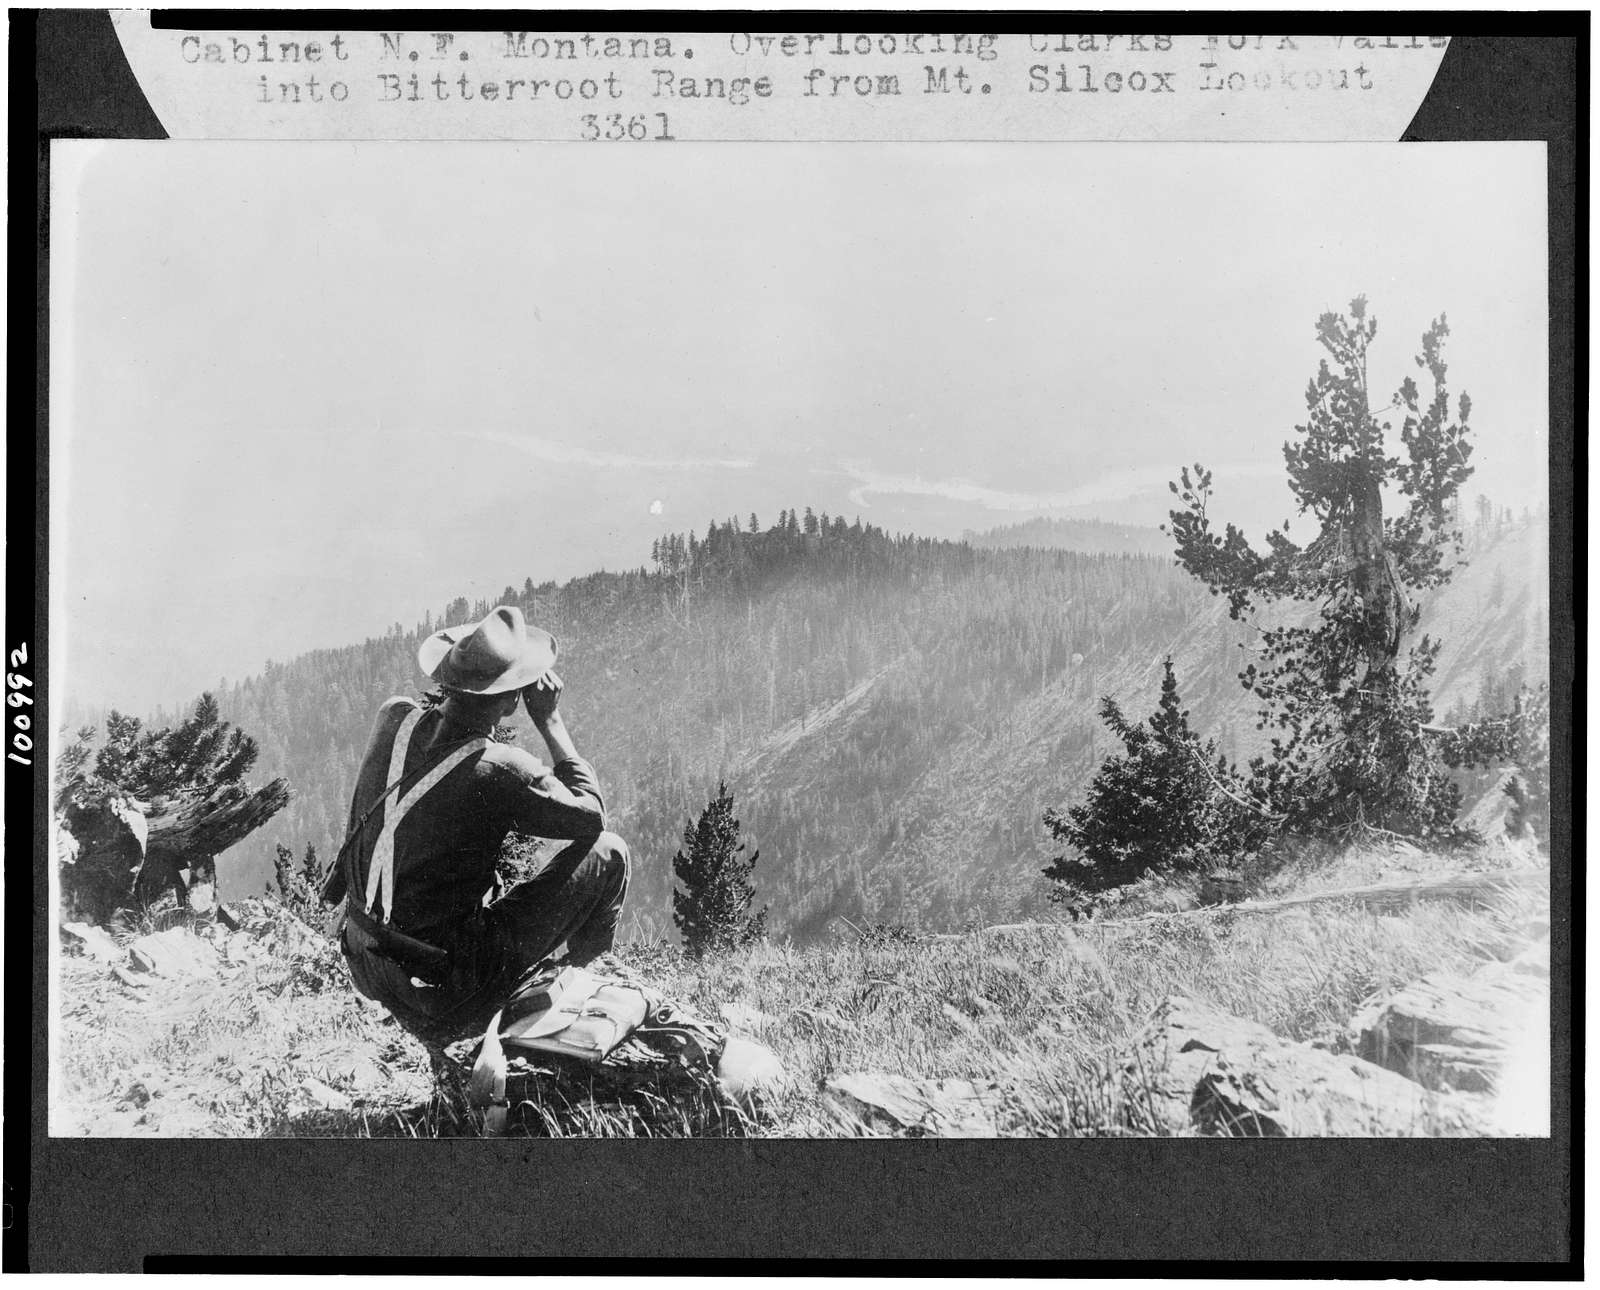 [Cabinet National Forest, Montana. Overlooking Clarks Fork Valley into Bitterroot Range from Mt. Silcox Lookout]